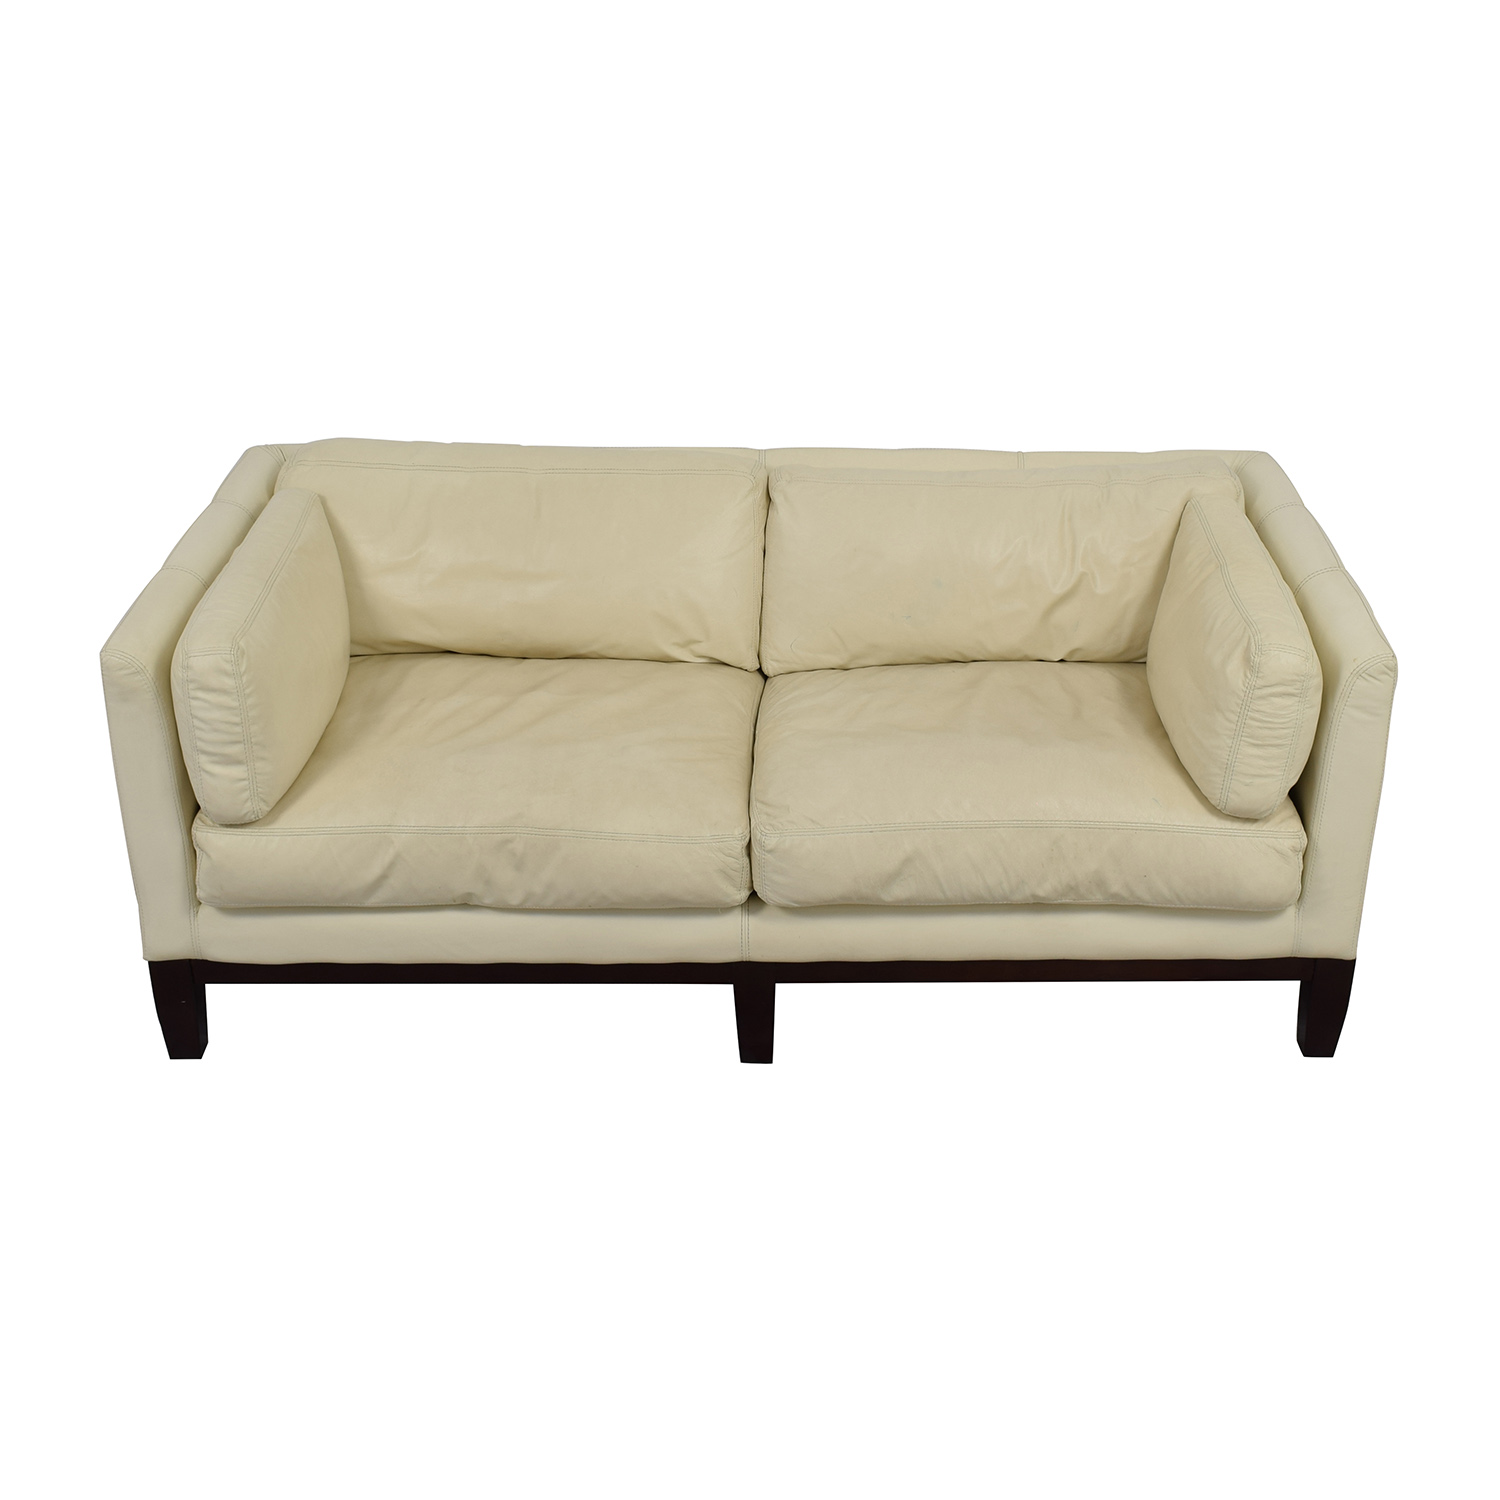 Used Settee 28 Images Beige L Shape Sofa With Settee Used Furniture For Sale Used